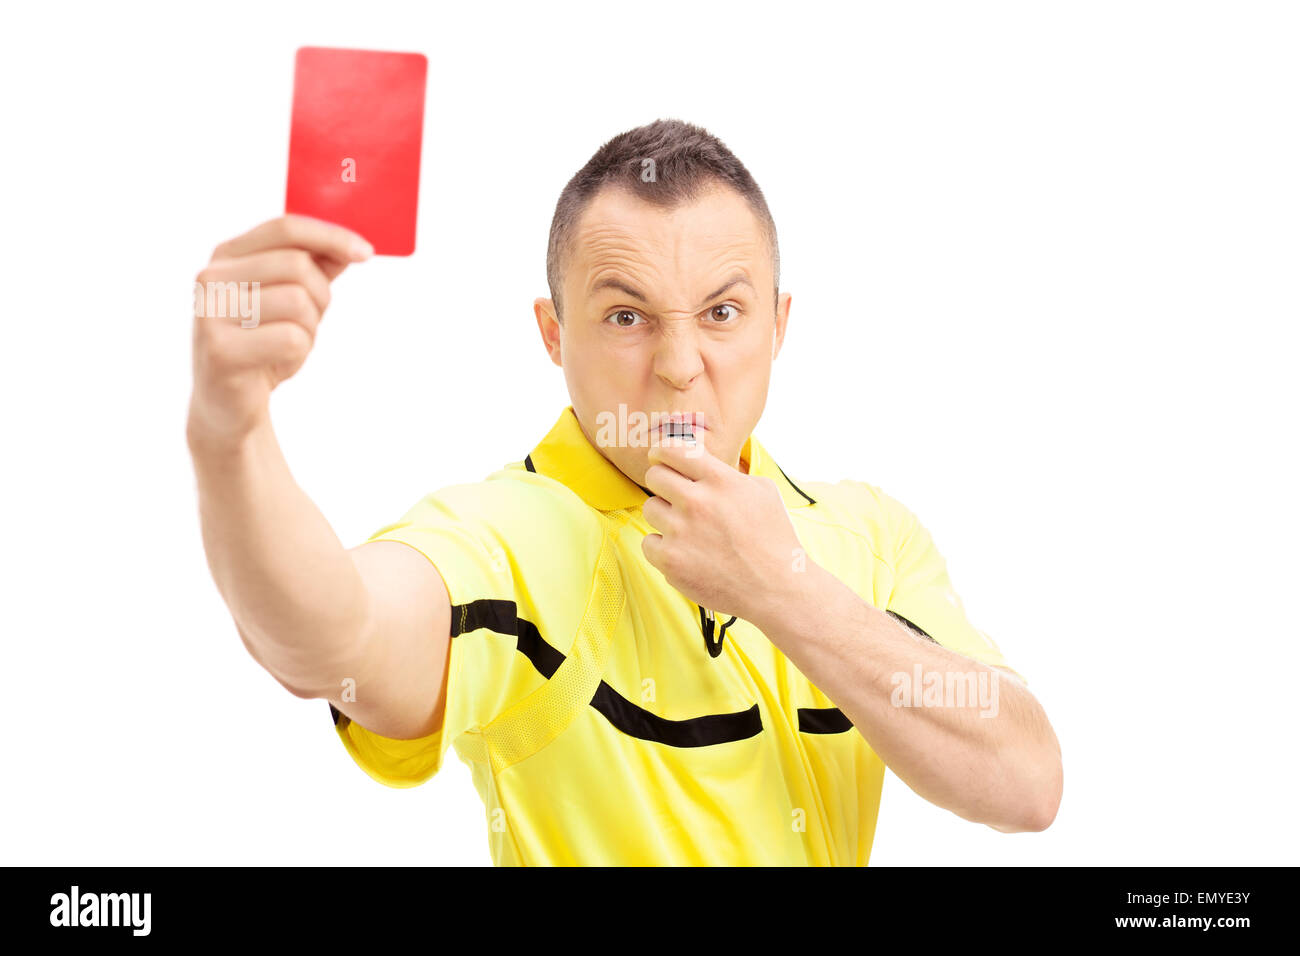 Furious football referee showing a red card and blowing a whistle isolated on white background - Stock Image